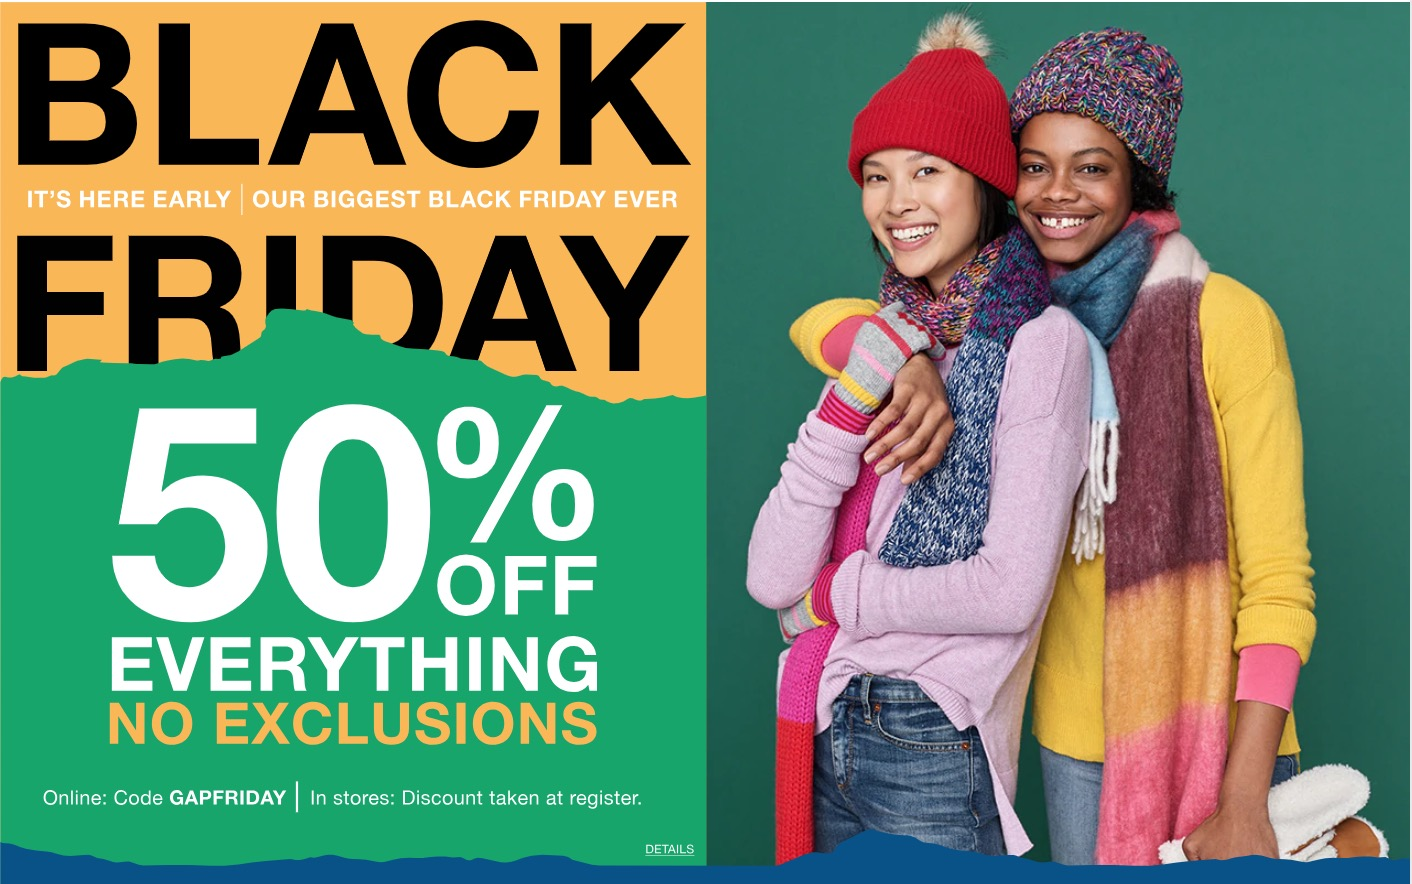 Gap Canada Black Friday 2018 Early Sale: Save 50% off Everything with Promo Code + More Deals!